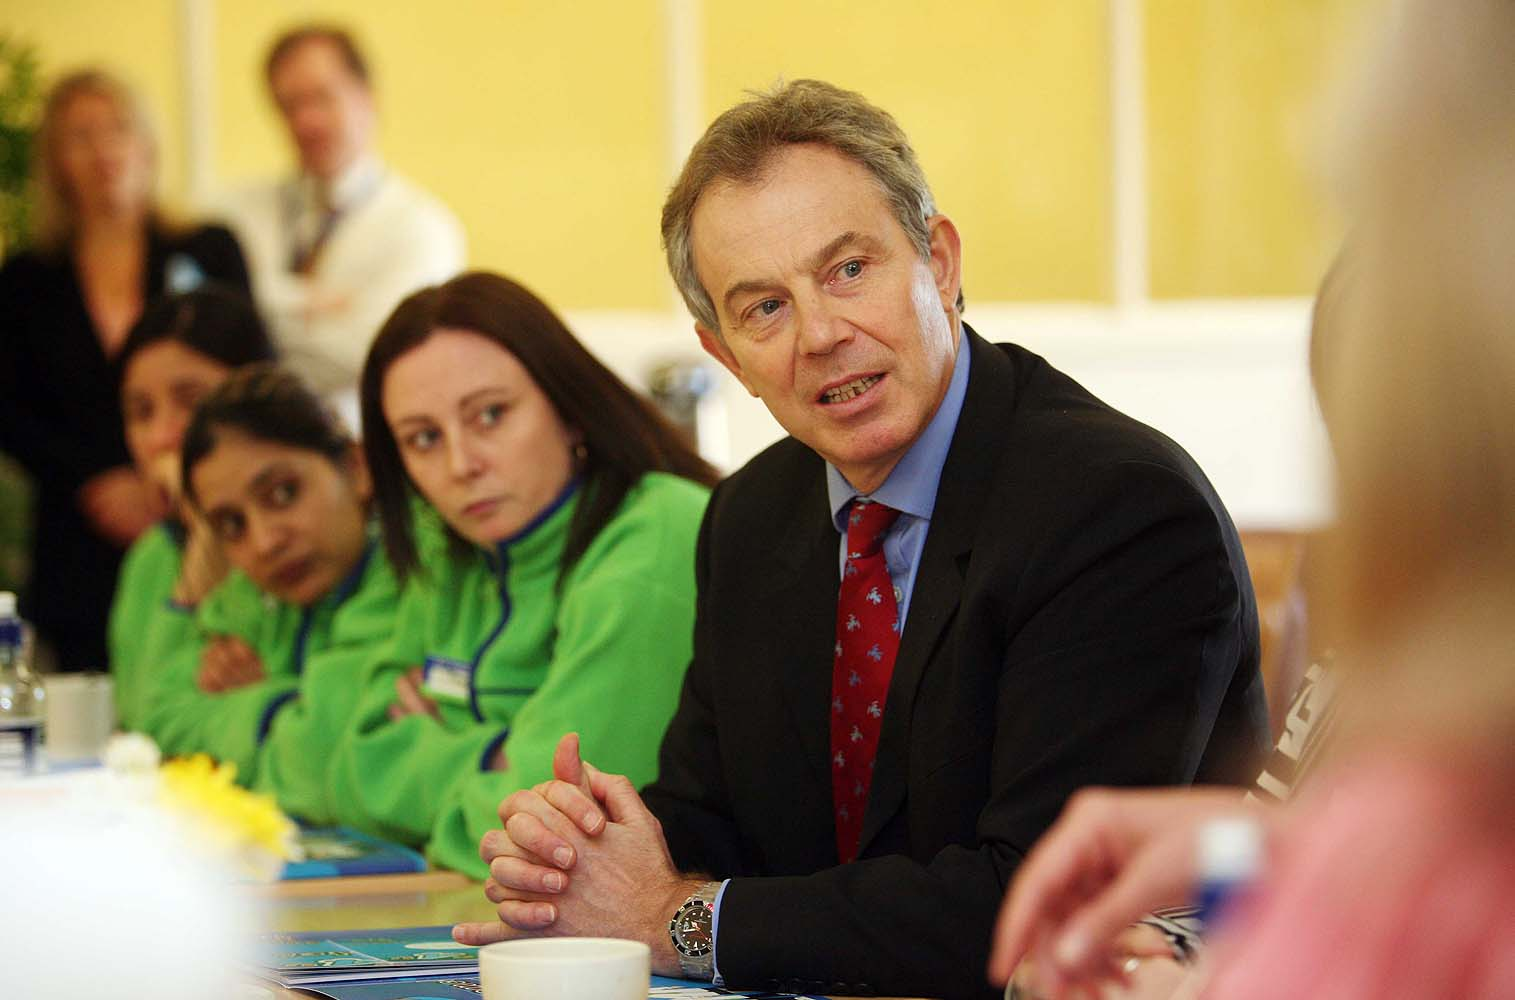 Tony Blair chats to staff during a visit to a ASDA store in South London. Client: ASDA.